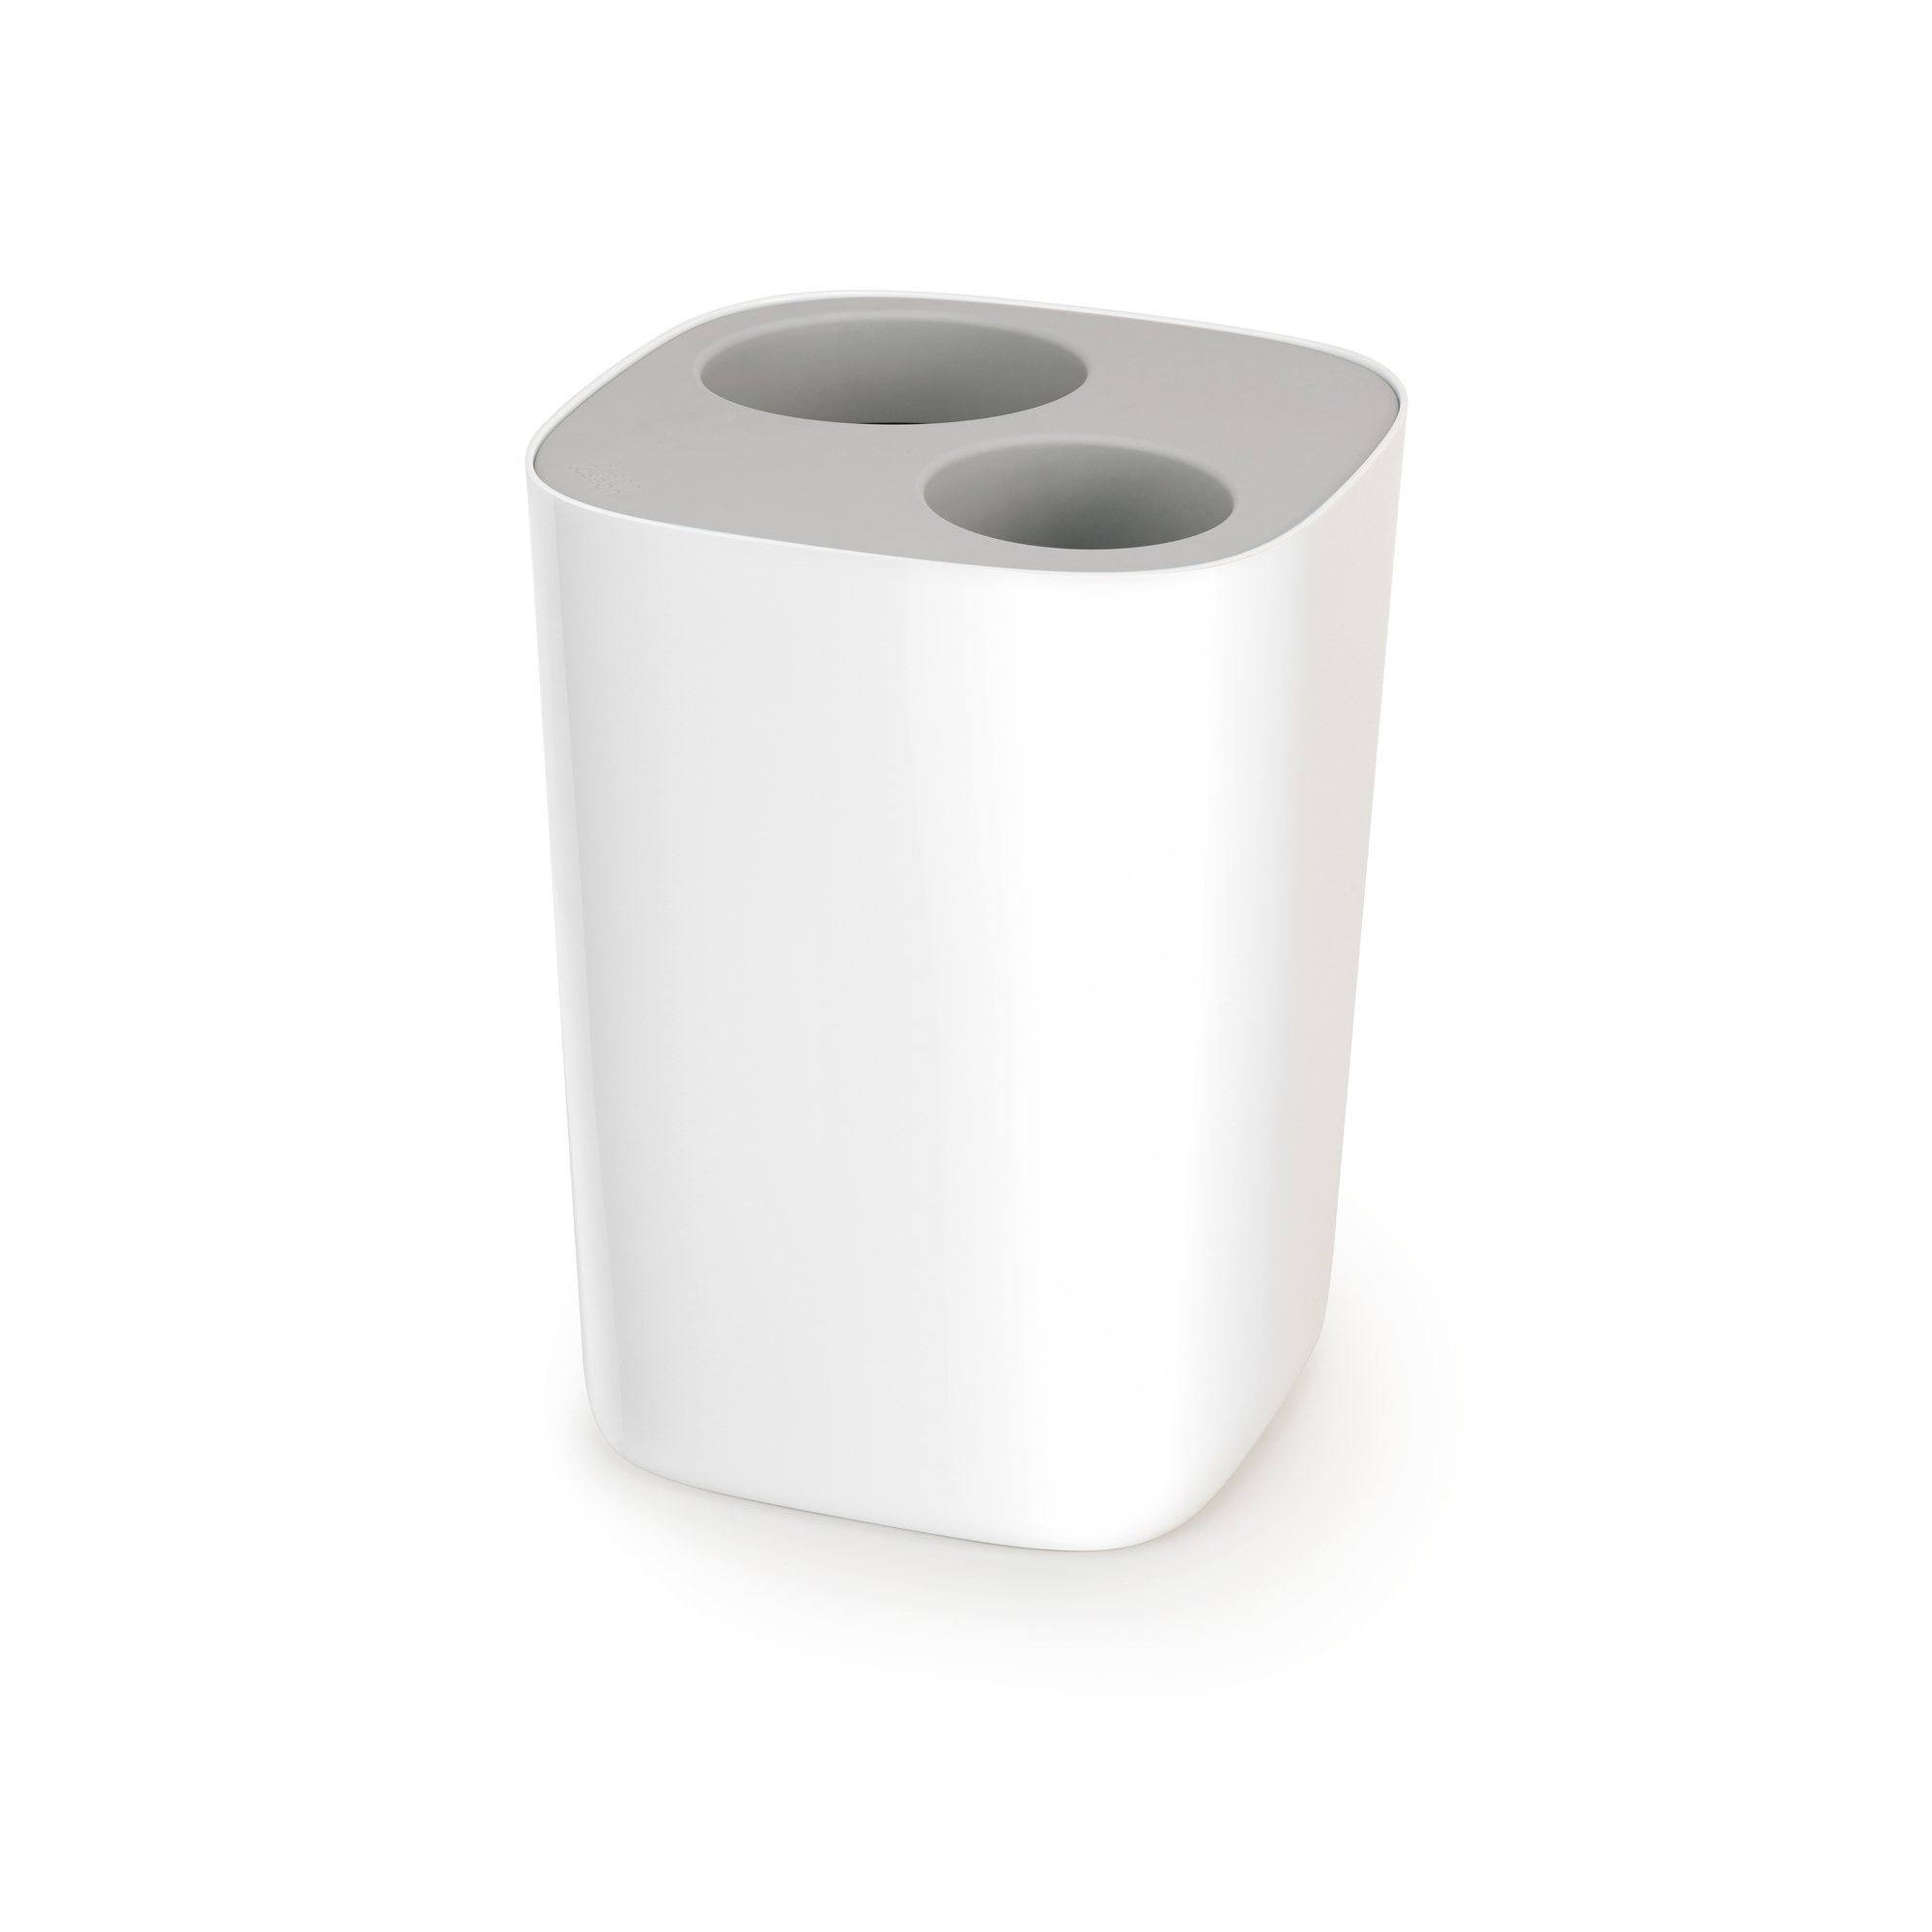 Split Bathroom Waste Separation Bin Grey